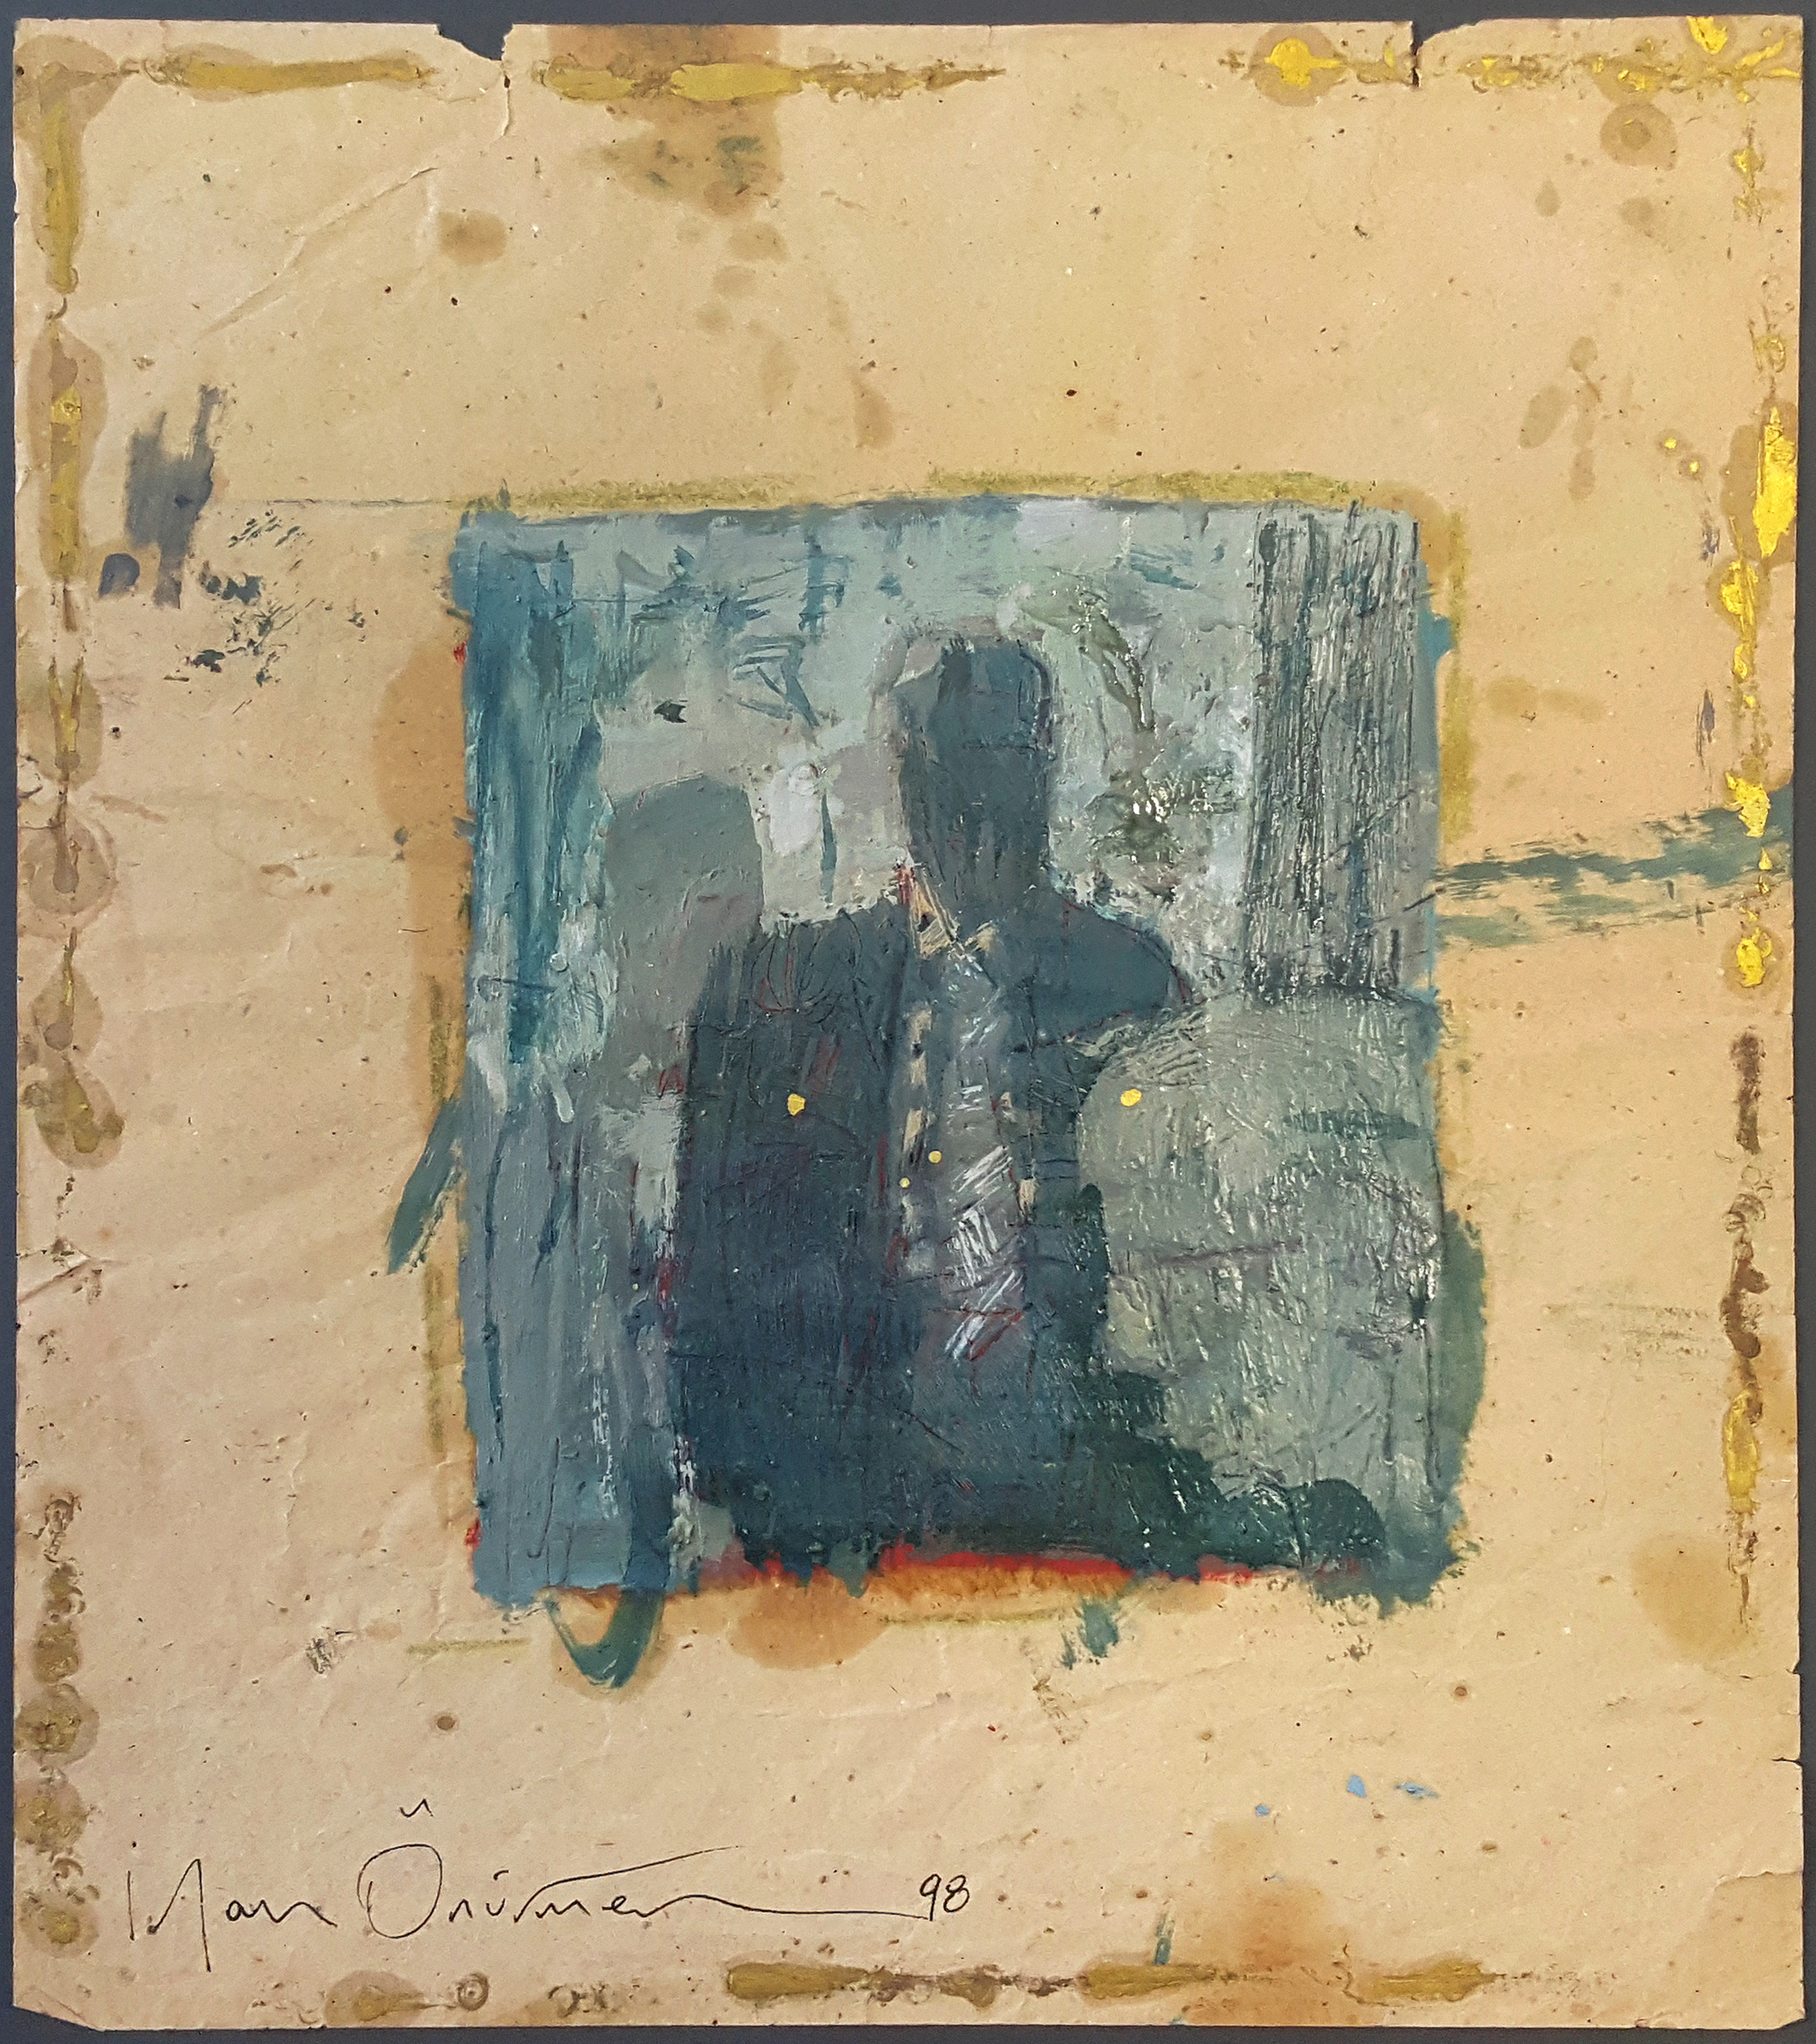 Untitled-1998-oil on paper-30x33cm.jpg